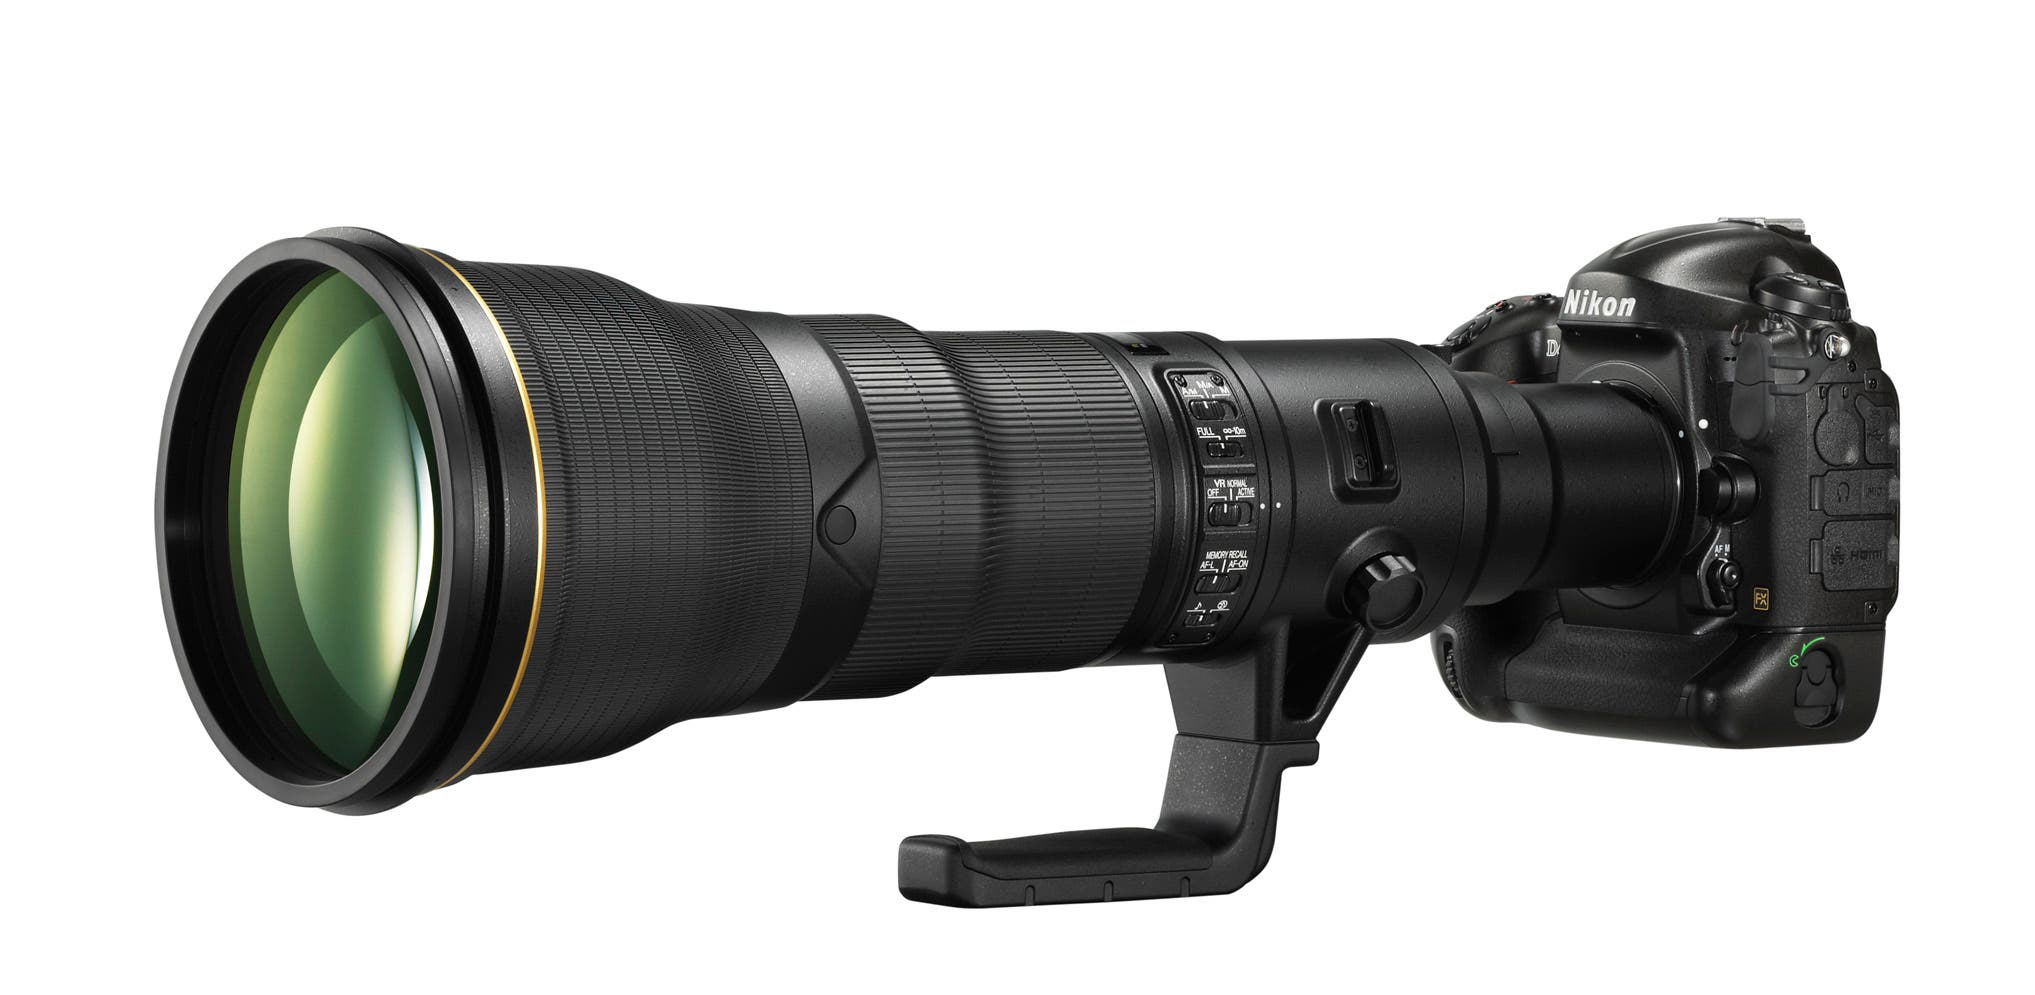 Nikon Announces Development of an 800mm Lens Designed For Spying On Your Neighbors